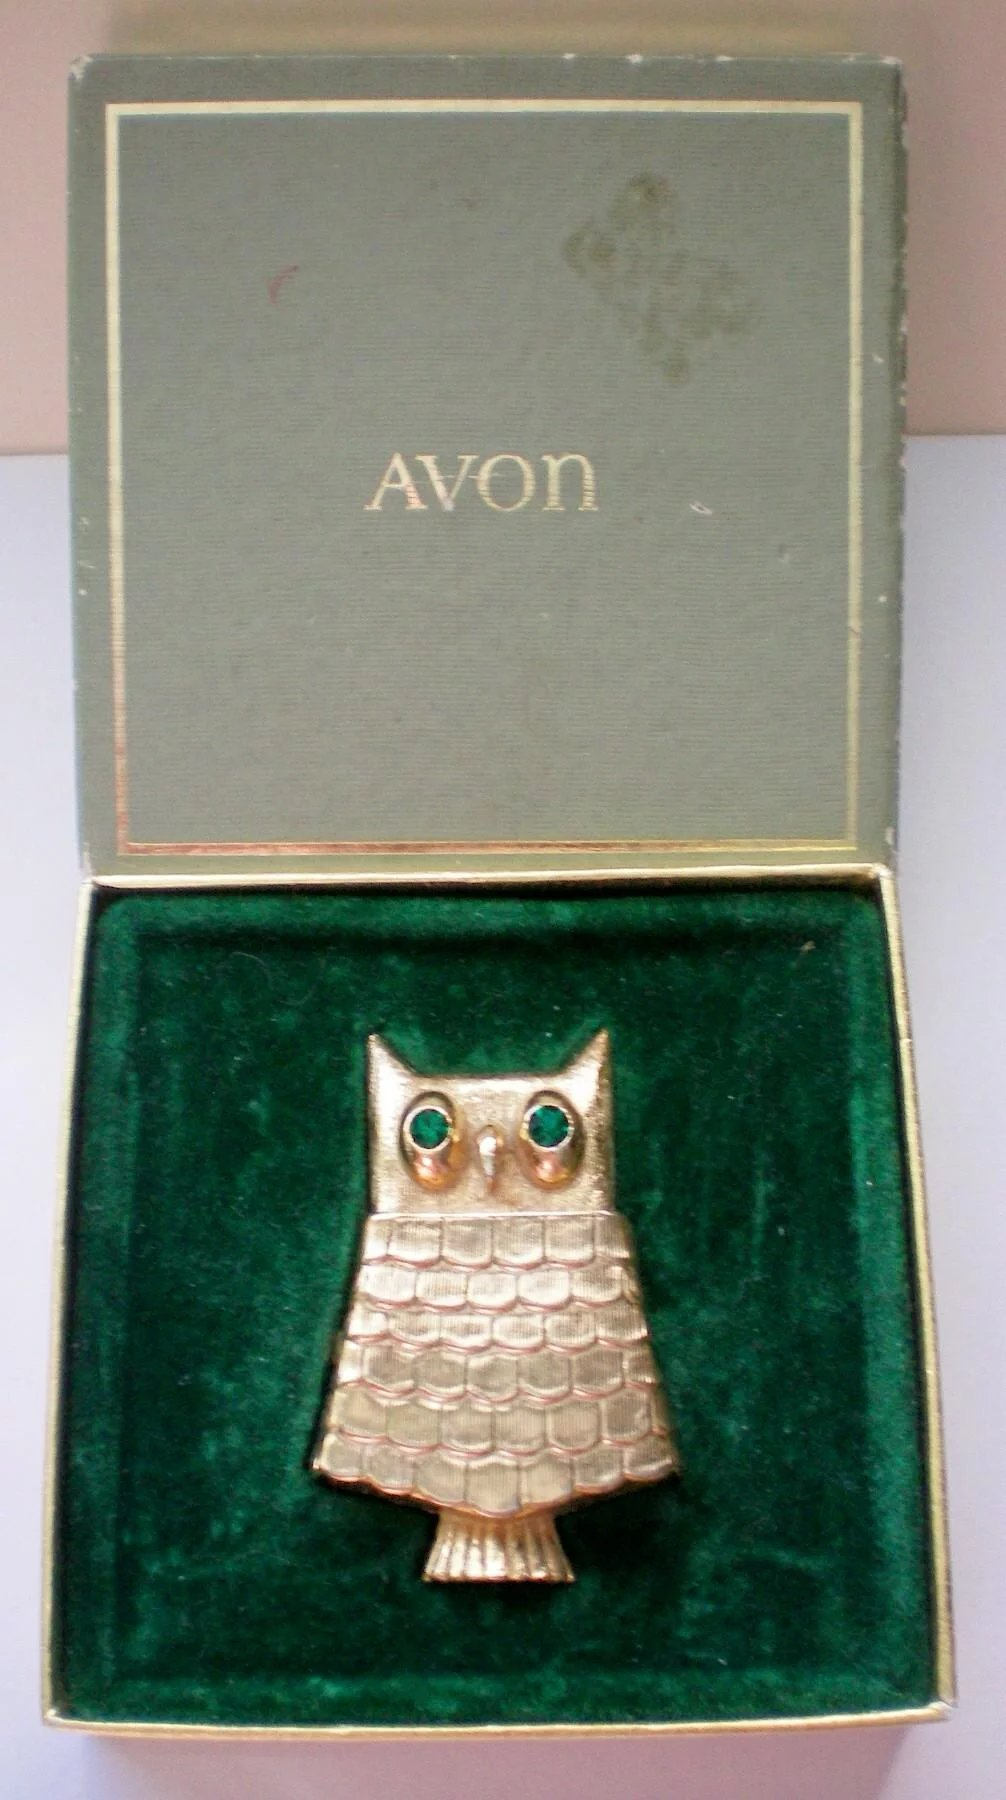 Avon Owl Glace Perfume Pin with Original Box : The Manor's ...